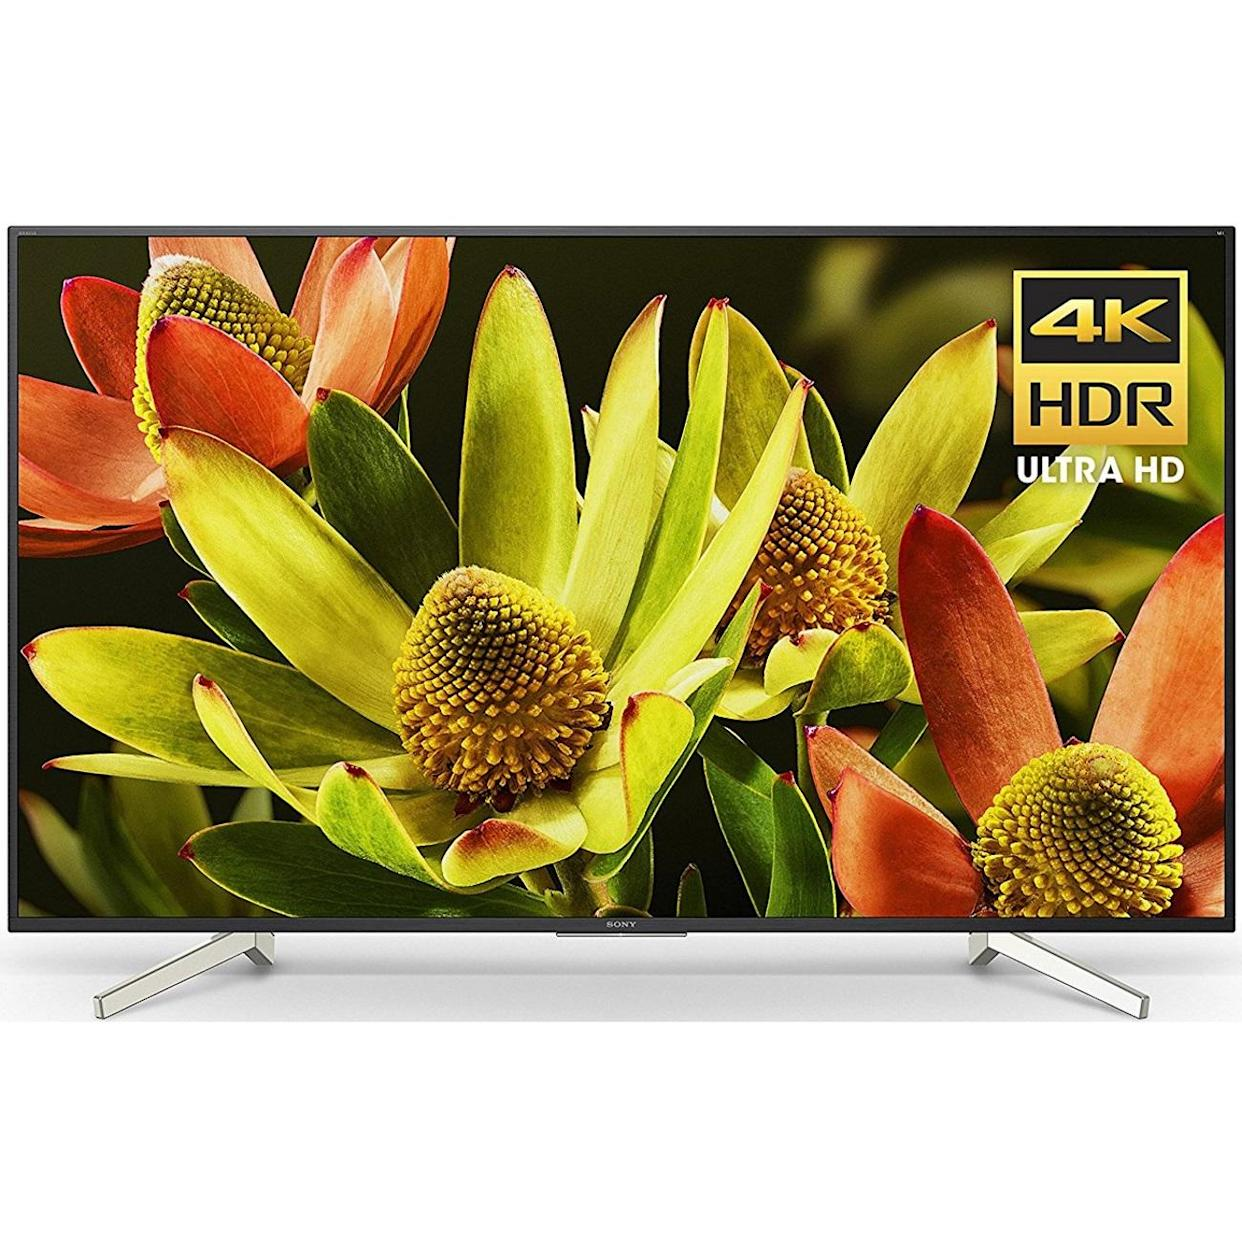 Sony 70-inch BRAVIA 4K TV is on sale for $998 at Walmart